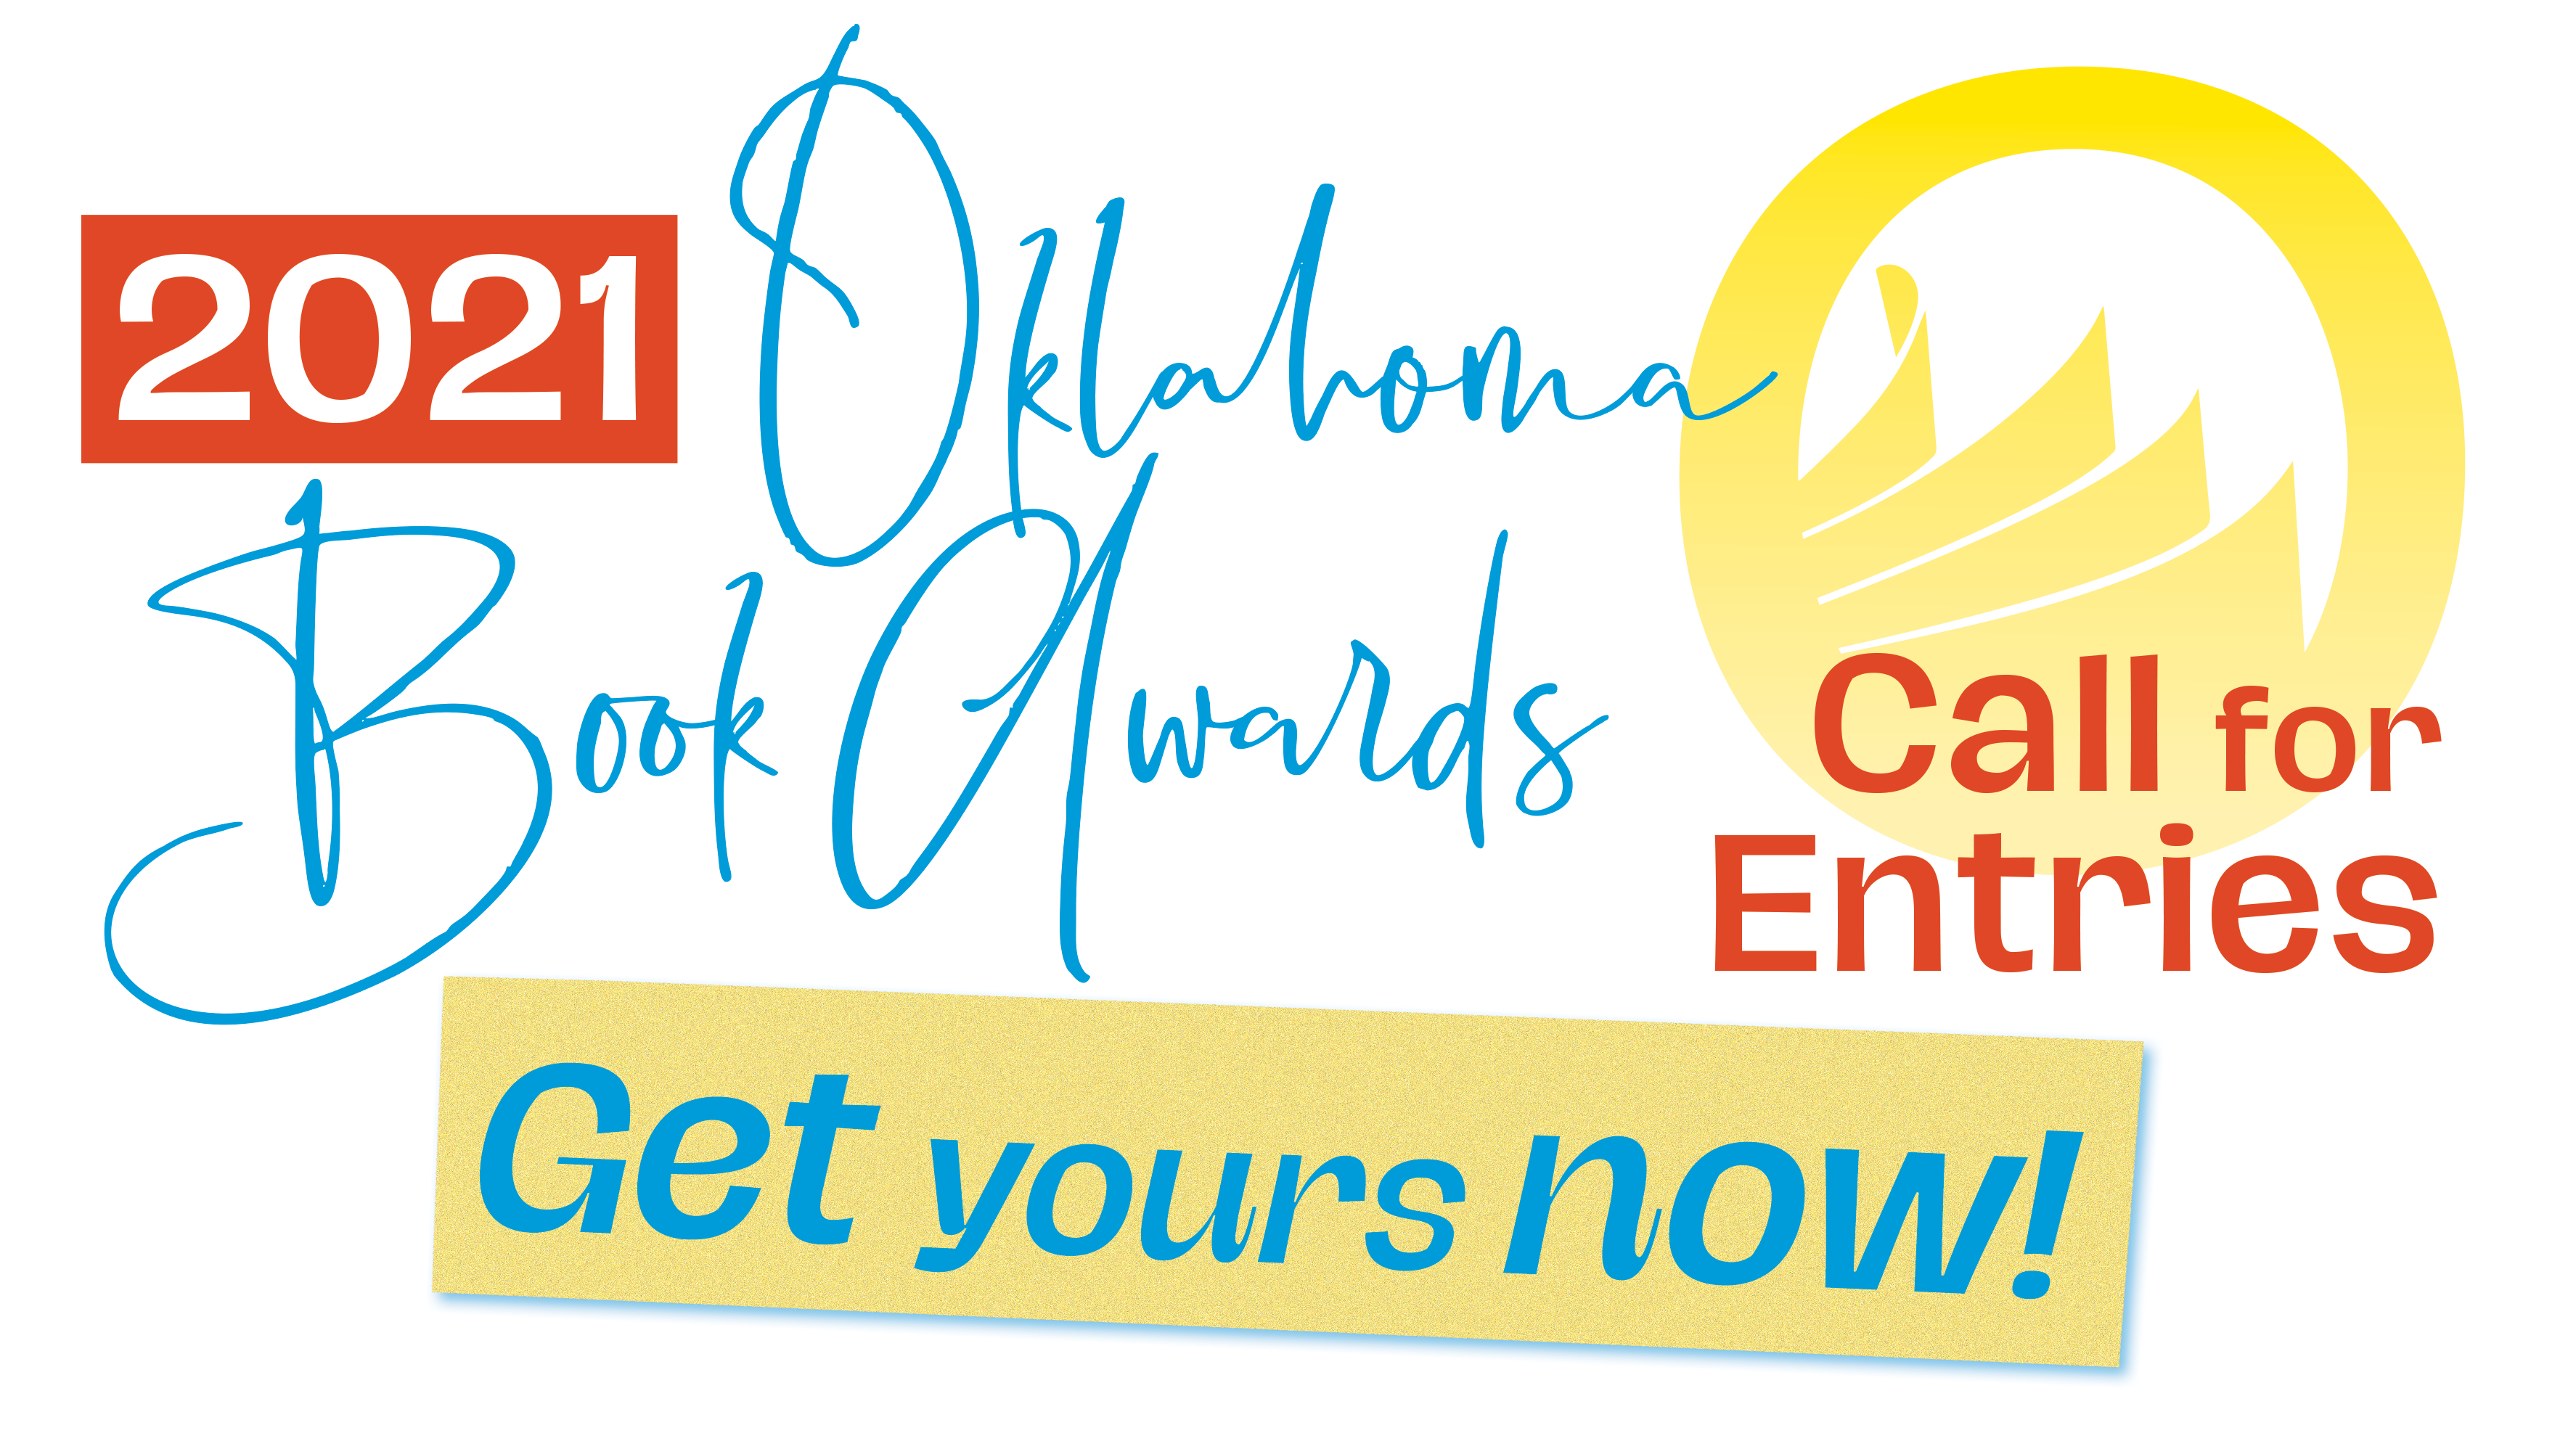 Open the 2021 Oklahoma Book Awards Call for Entries